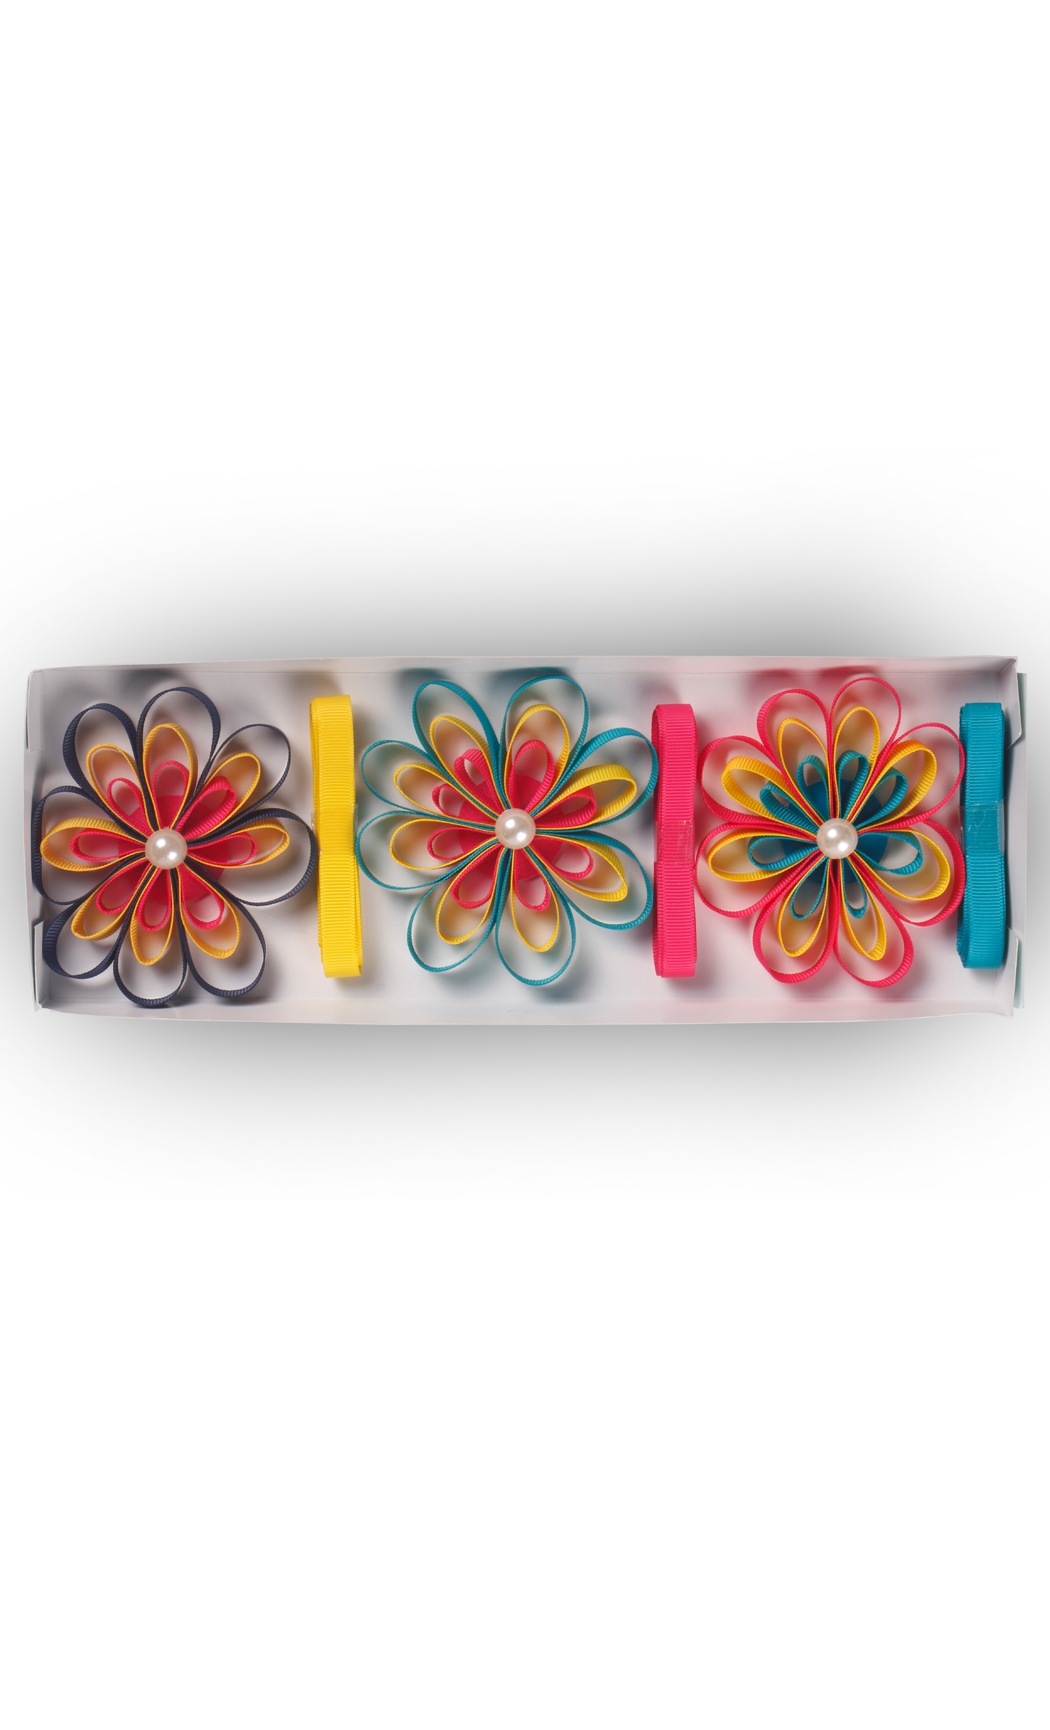 Ready to Stick Grosgrain Bright Bows (Set of 3) - Buy Online